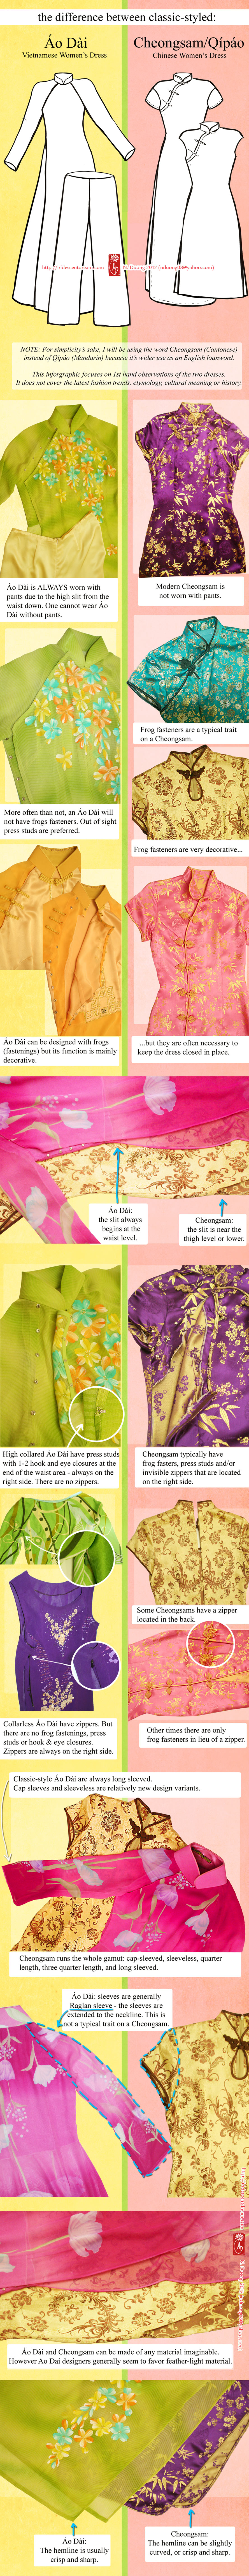 the difference between Ao Dai and Cheongsam/Qipao